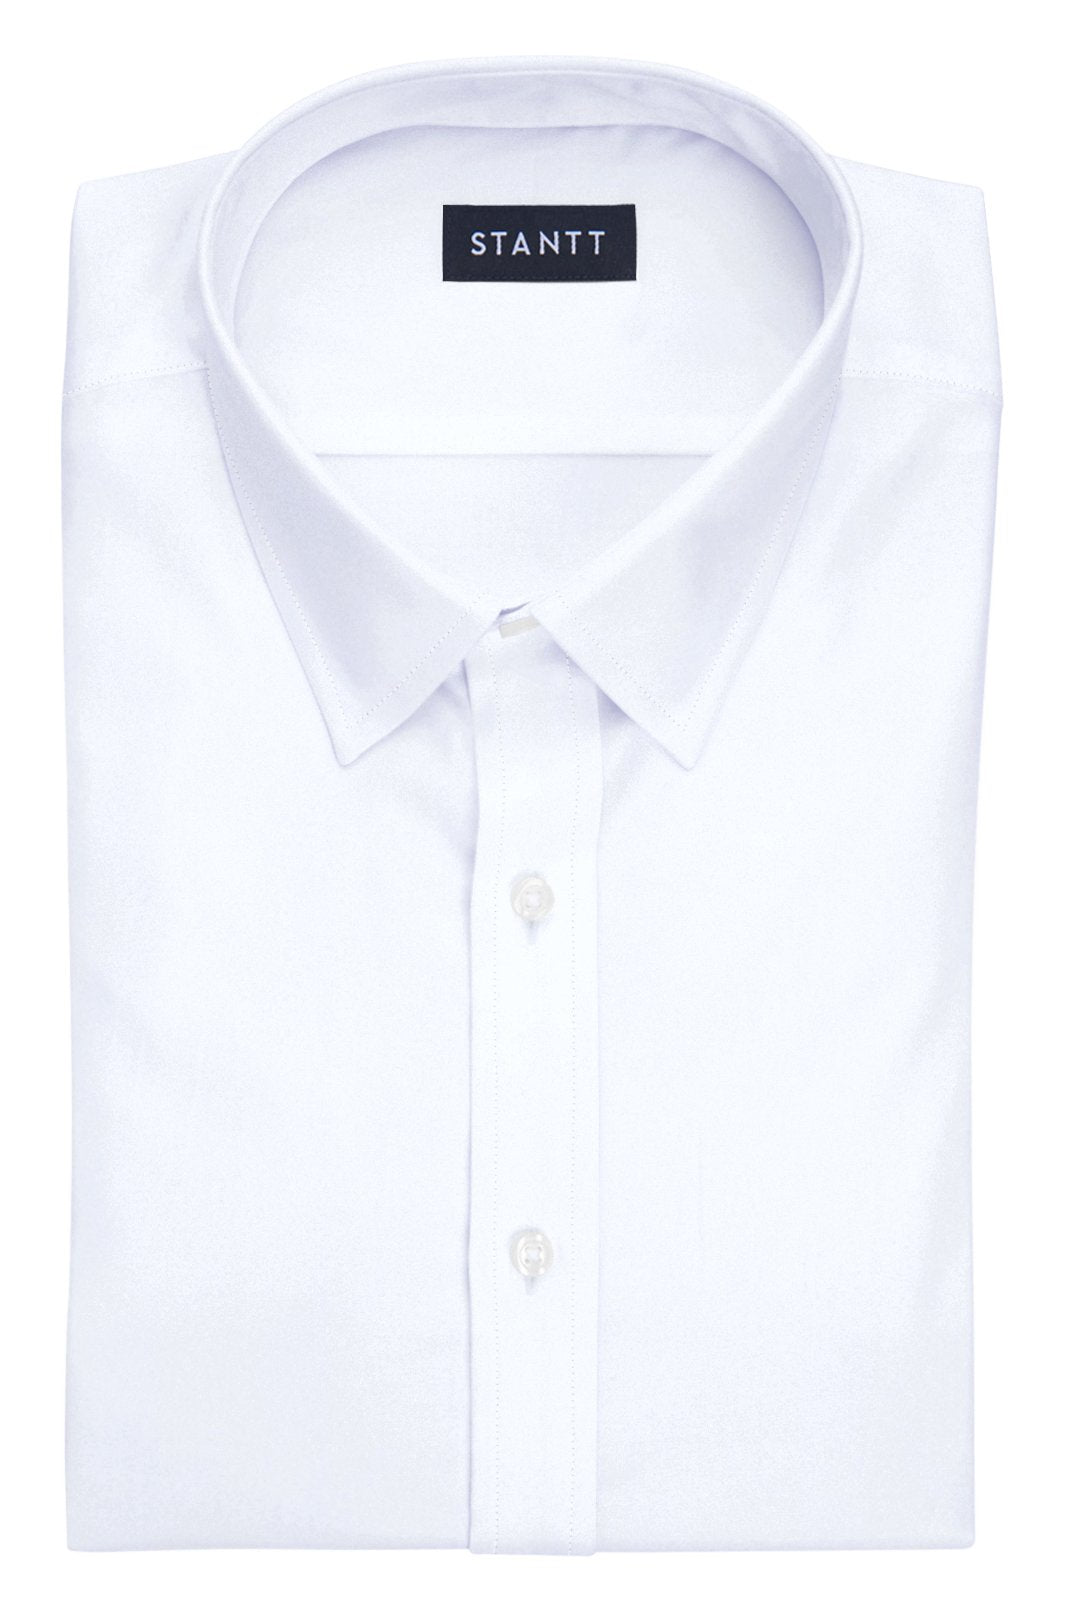 White Luxe Traveler's Twill: Semi Collar, French Cuff